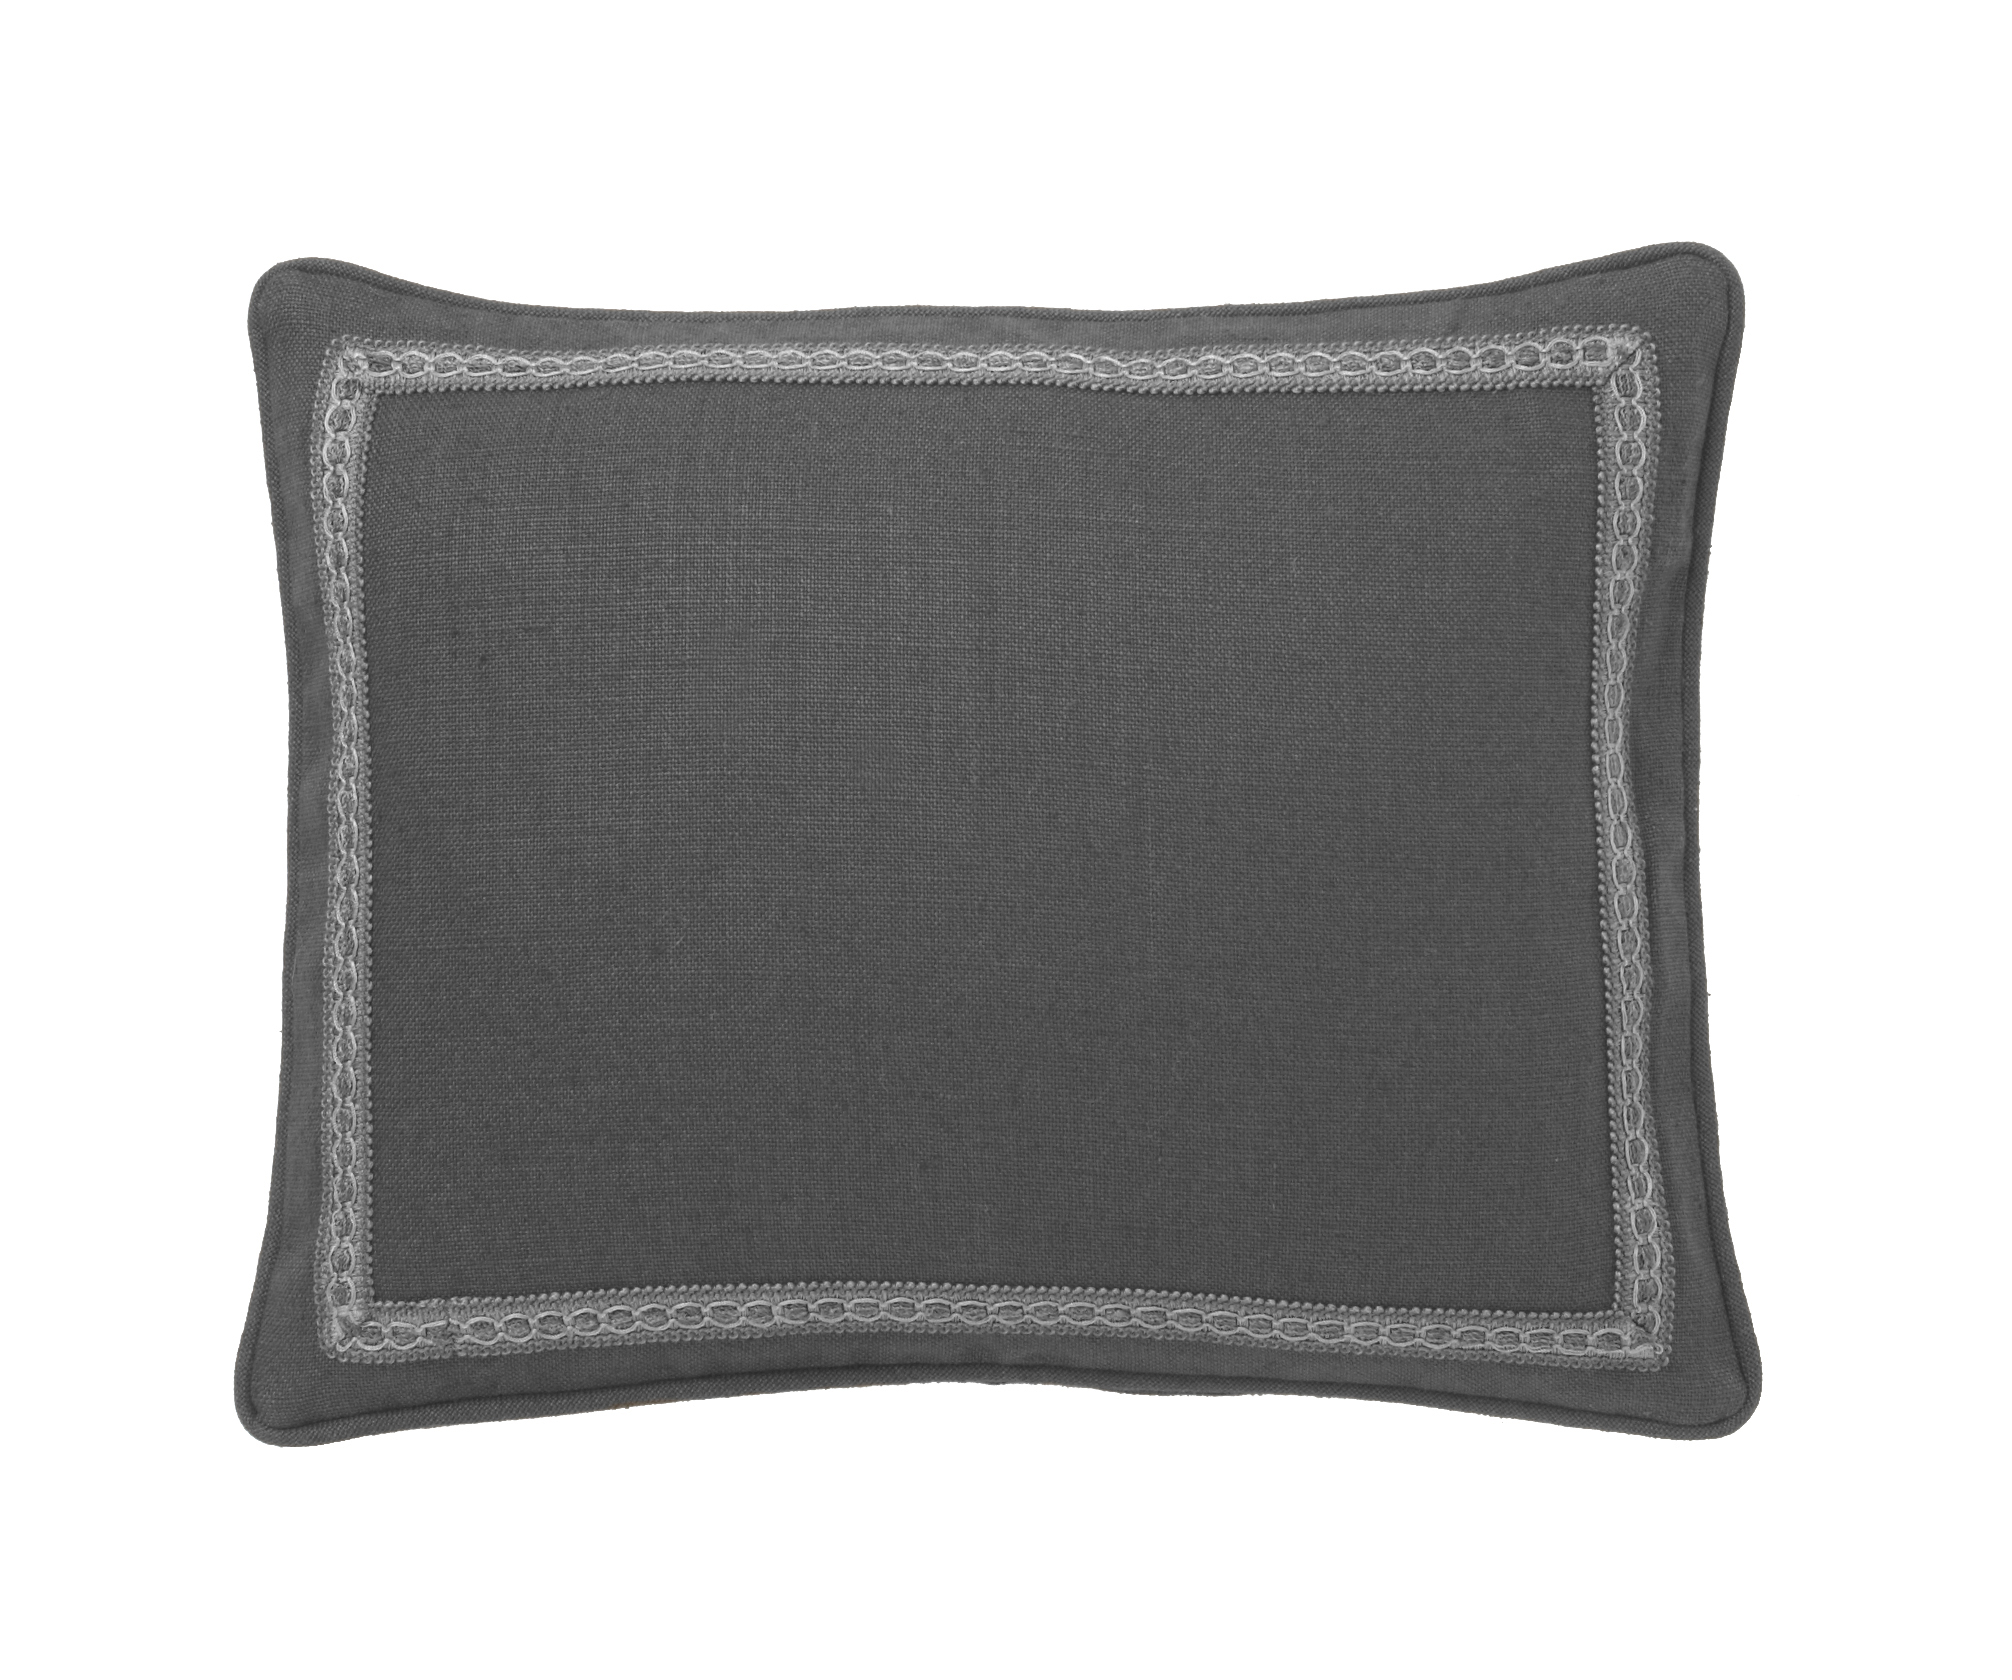 Throw Pillow Insert Sizes : Throw Pillow Inserts 22x22. Decorative Cotton Pillow Insert. . Large Size Of 22x22 Decorative ...